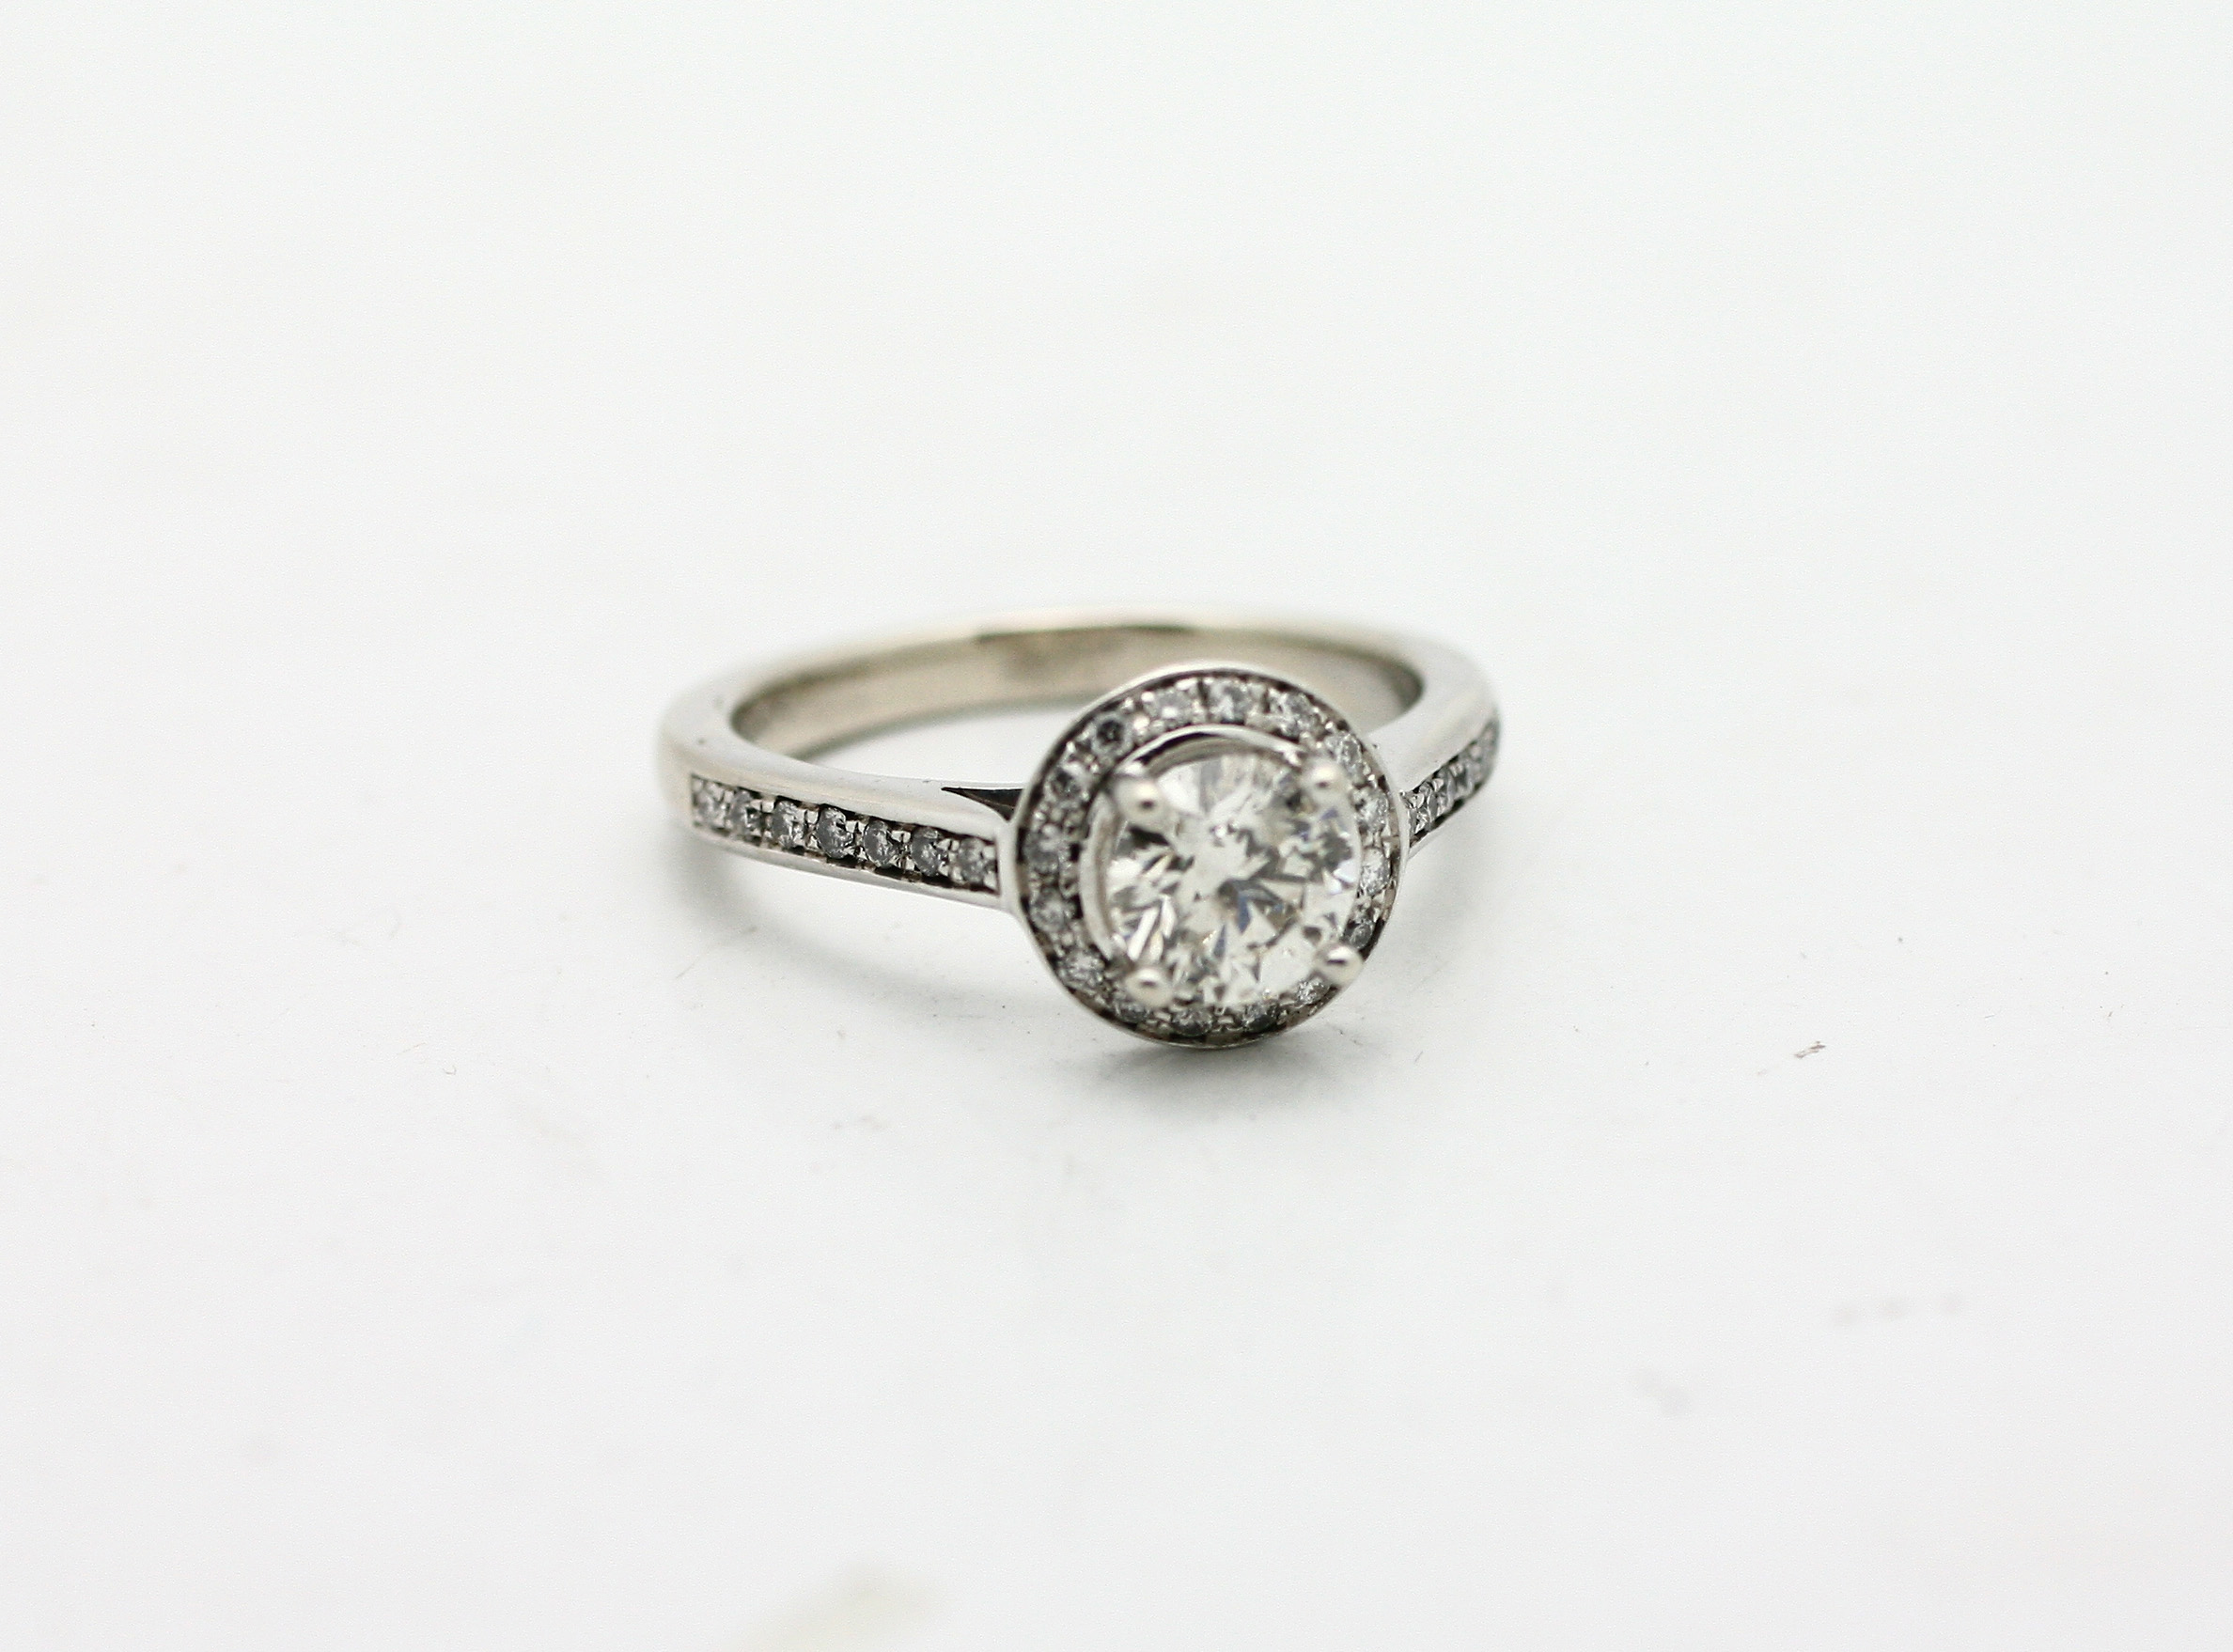 1.00ct round brilliant cut diamond center stone, surrounded with a small diamond halo. 0.30tcw diamond side stones, 18kt white gold.  Starting at $7000 for this stone size and SI-1 clarity GH colour  Can be customizable with any stone, size, metal etc.